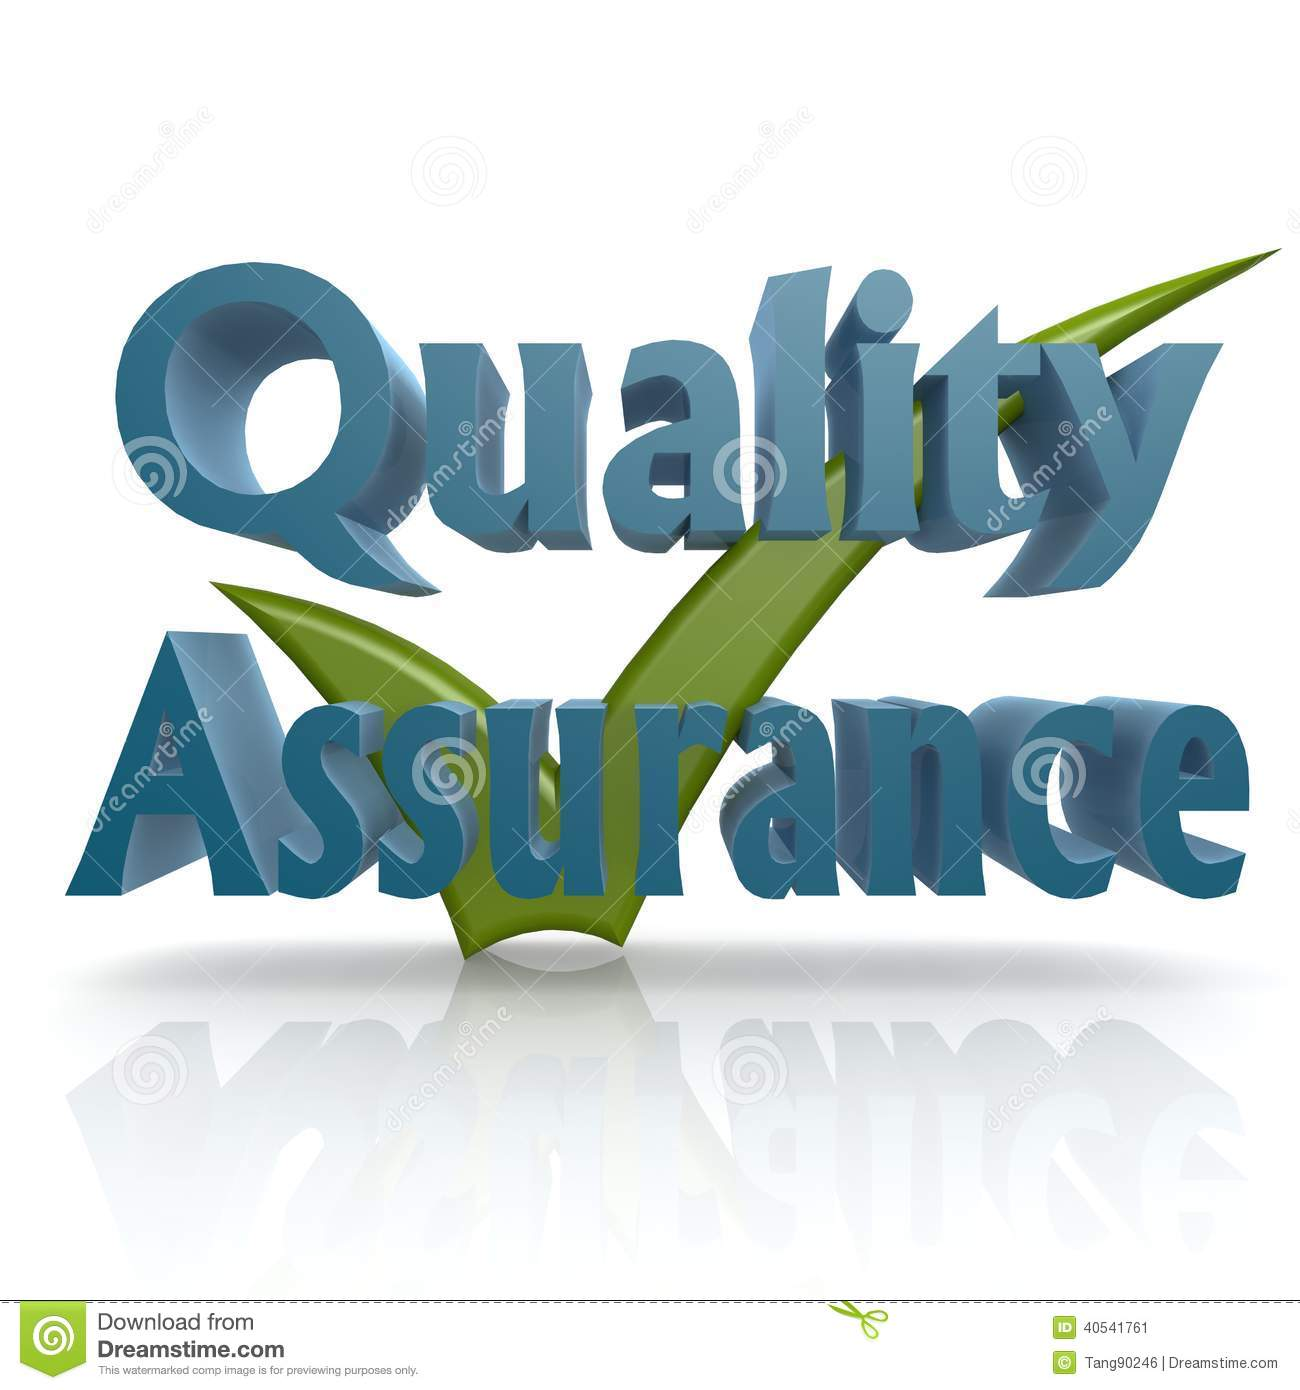 Tick quality assurance image with hi-res rendered artwork that could ...